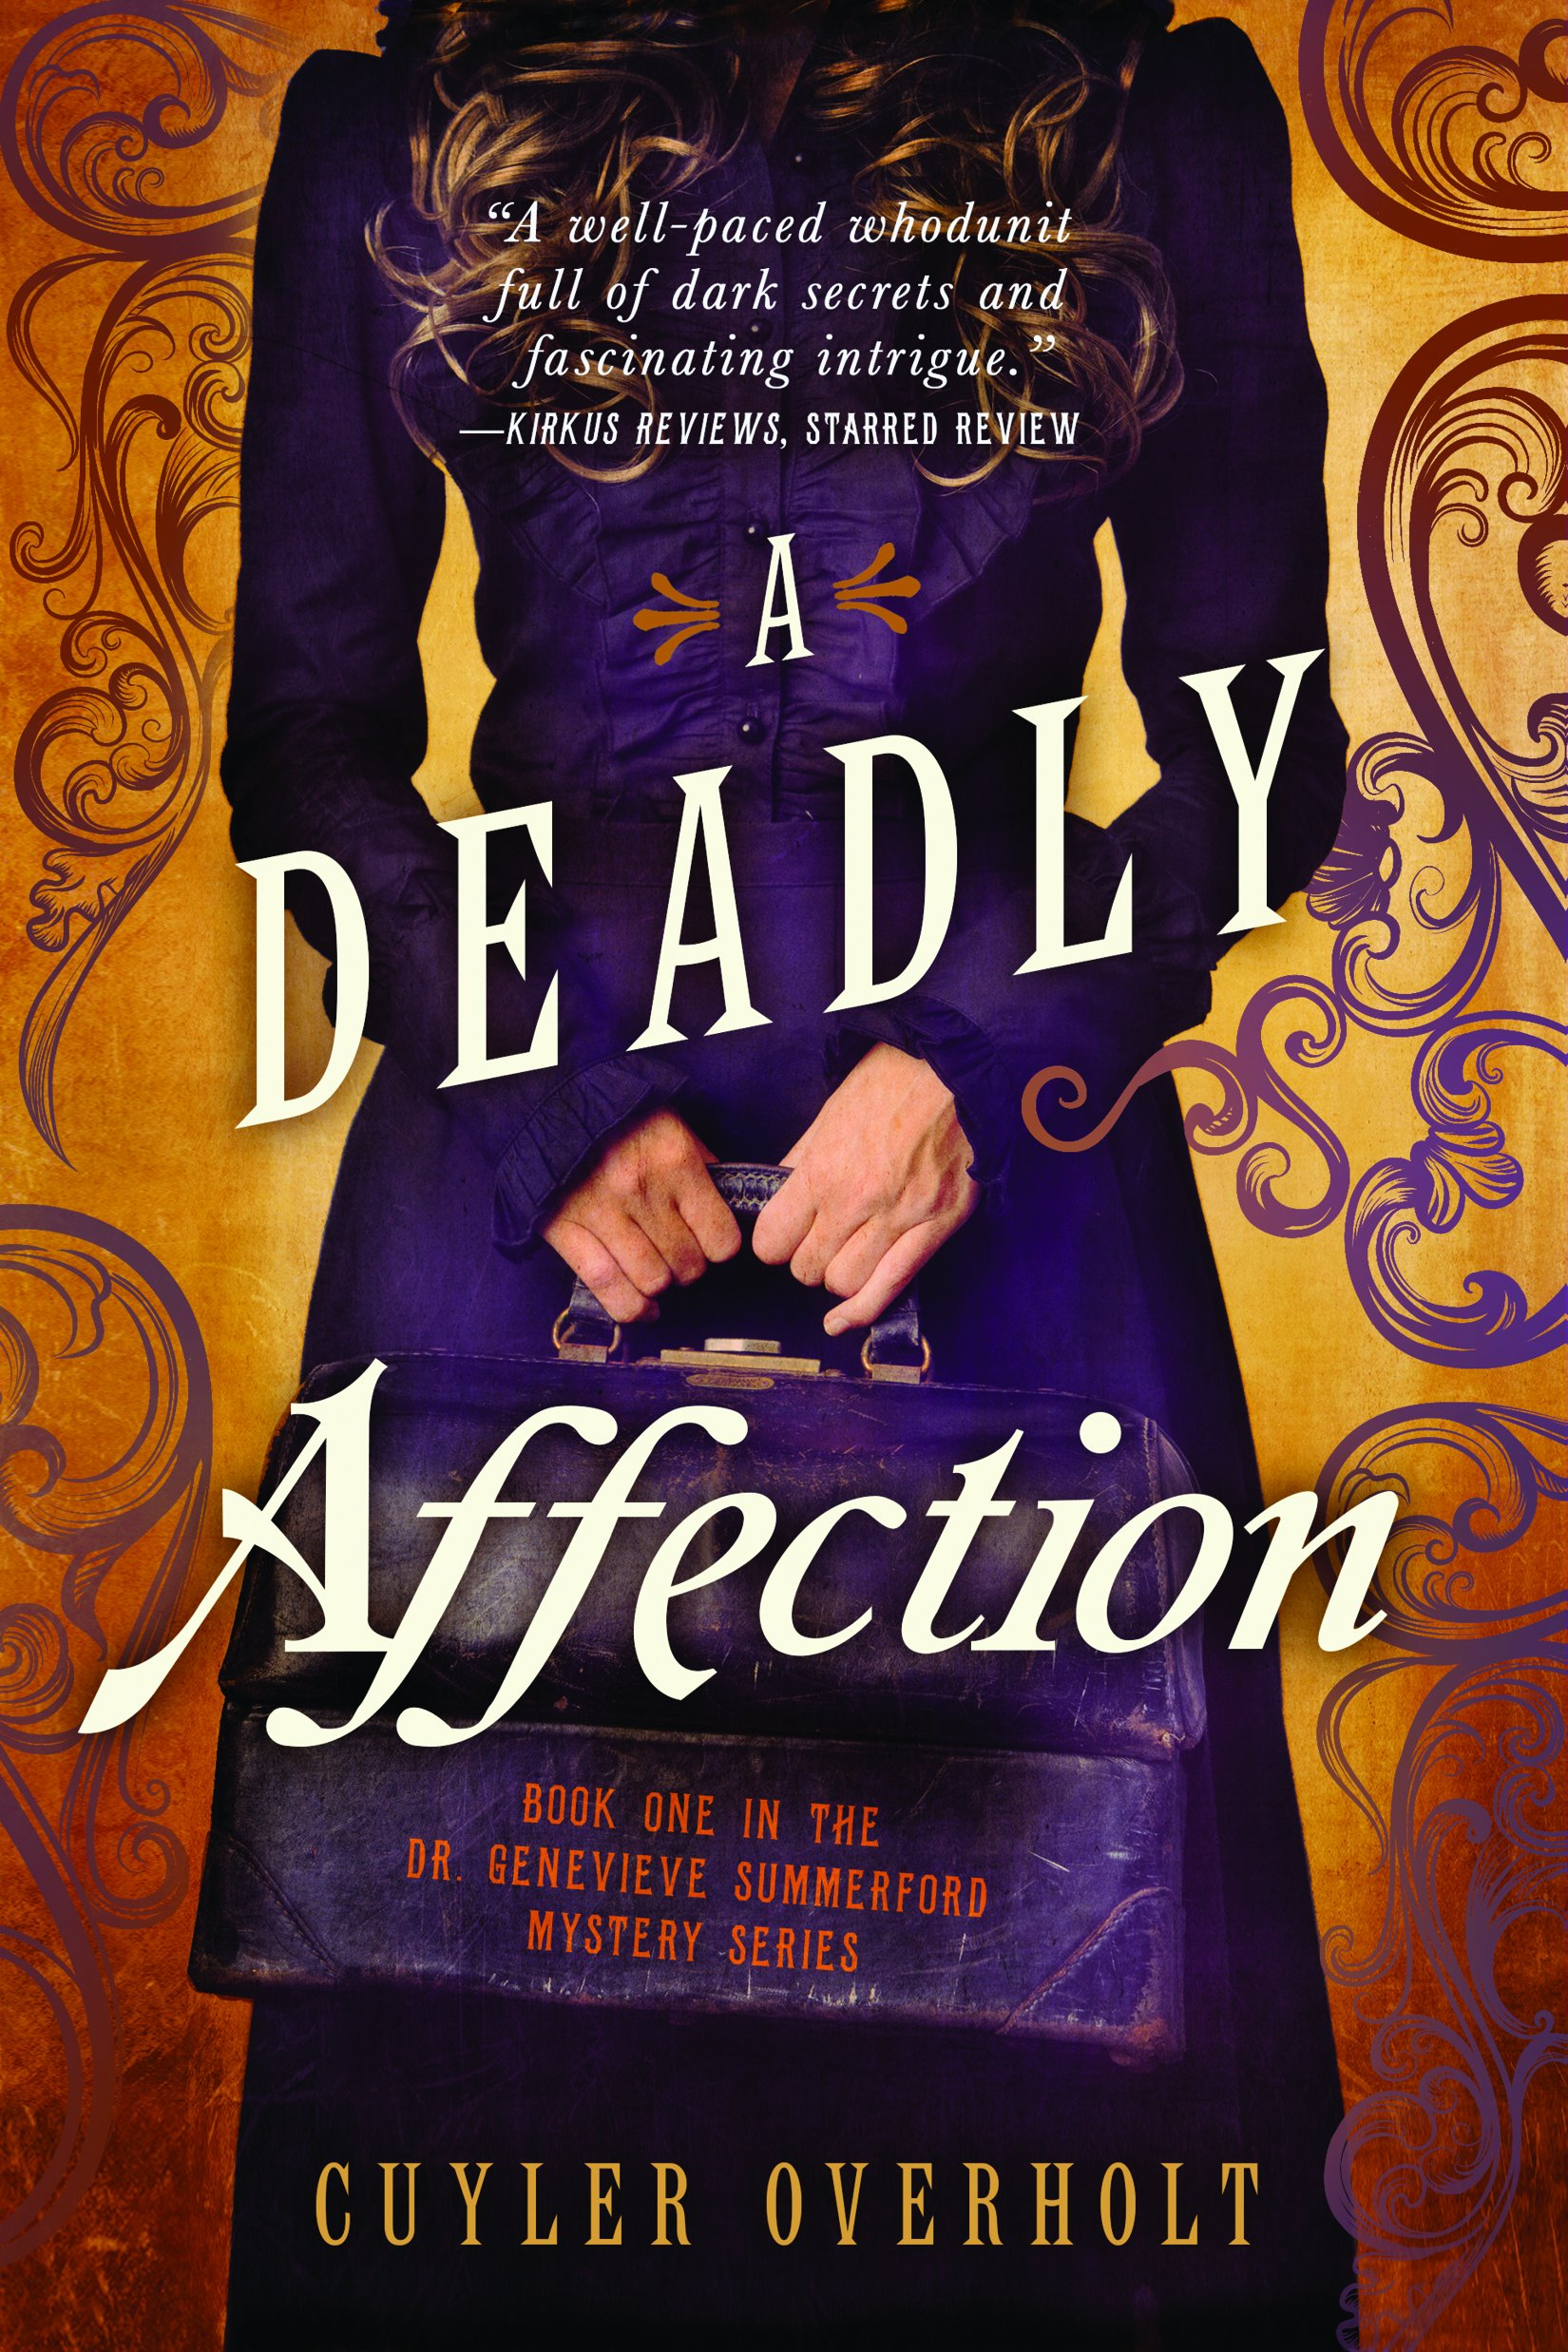 A Deadly Affection (Dr. Genevieve Summerford Mystery) PDF Text fb2 ebook